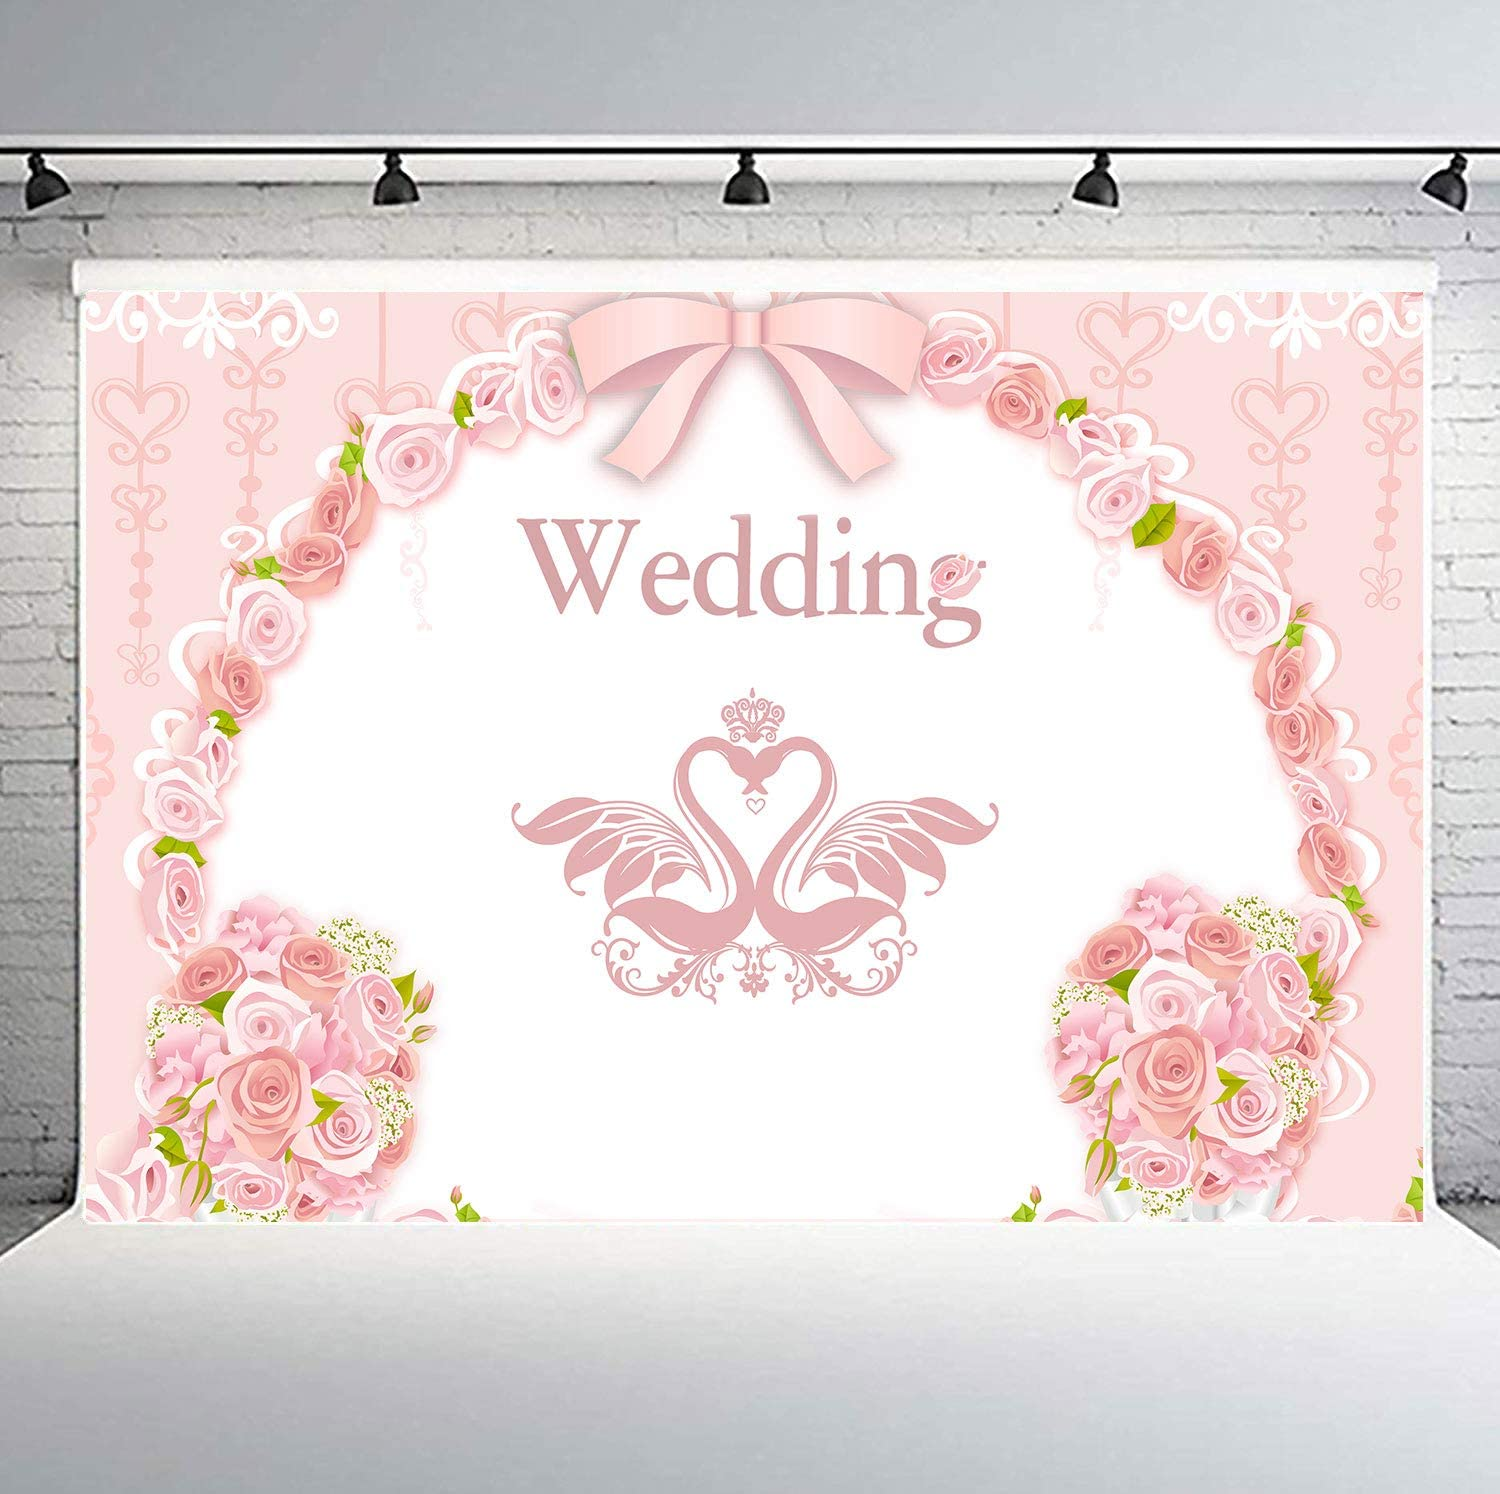 Amazon Com Flasiy Wedding Ceremony Backdrop For Photography 10x7ft Pink Rose Floral Flower Swan Background For Bridal Shower Dessert Table Decoration Party Banner Photo Video Studio Props Ay173 Camera Photo